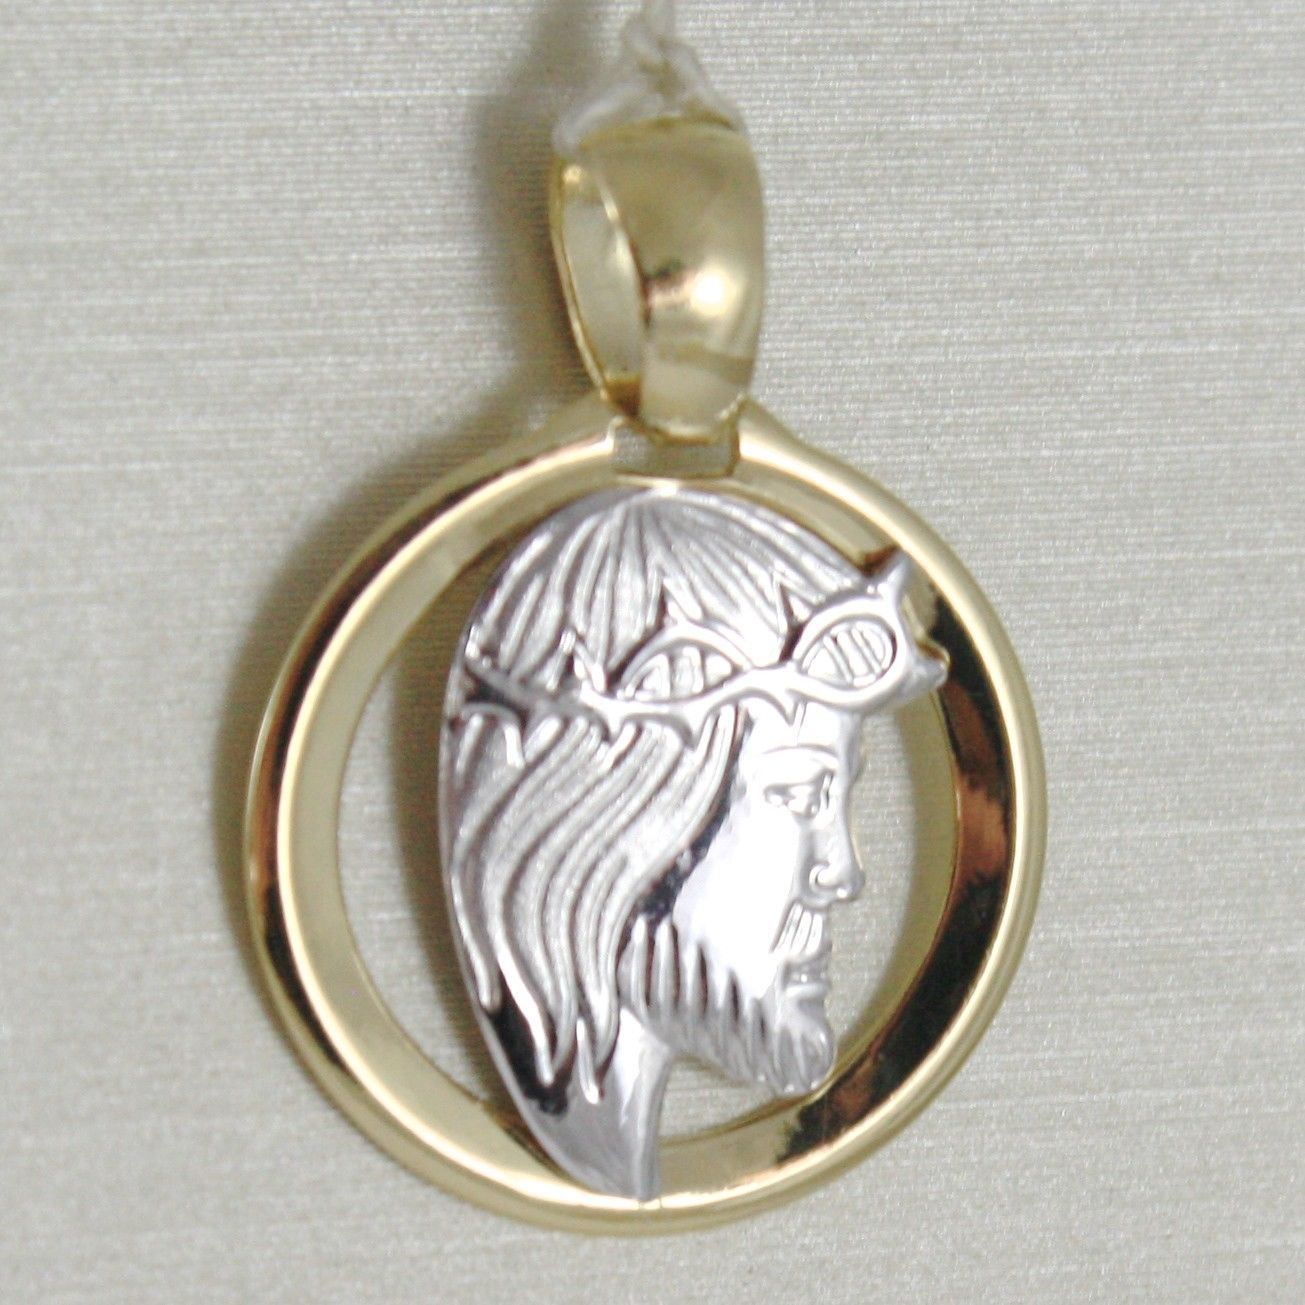 18K WHITE YELLOW GOLD PENDANT MEDAL, JESUS FACE, CROWN OF THORNS, MADE IN ITALY